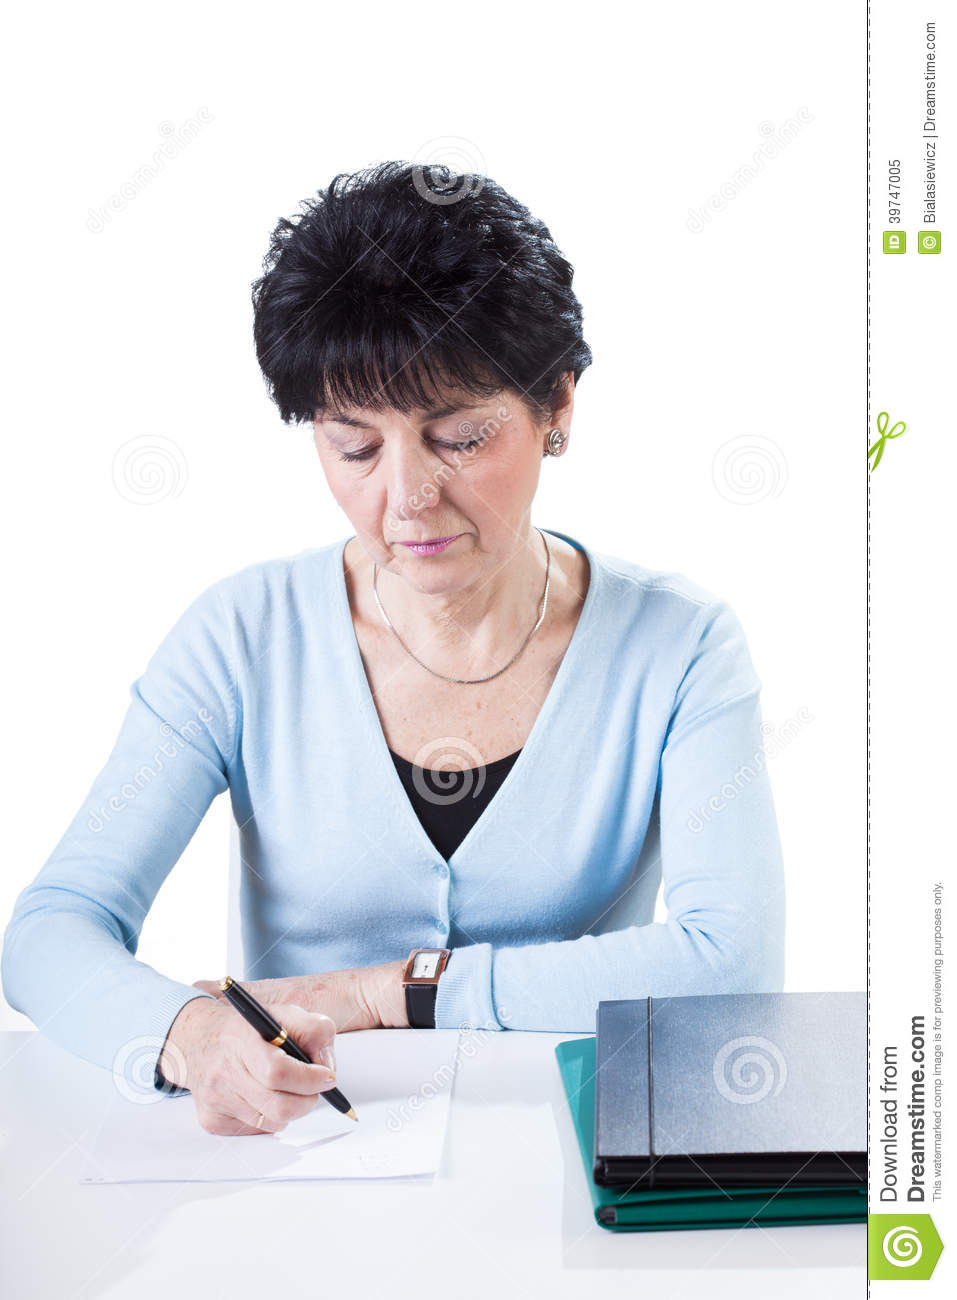 Accountant Wiriting By Desk Stock Image - Image of employee. black: 39747005